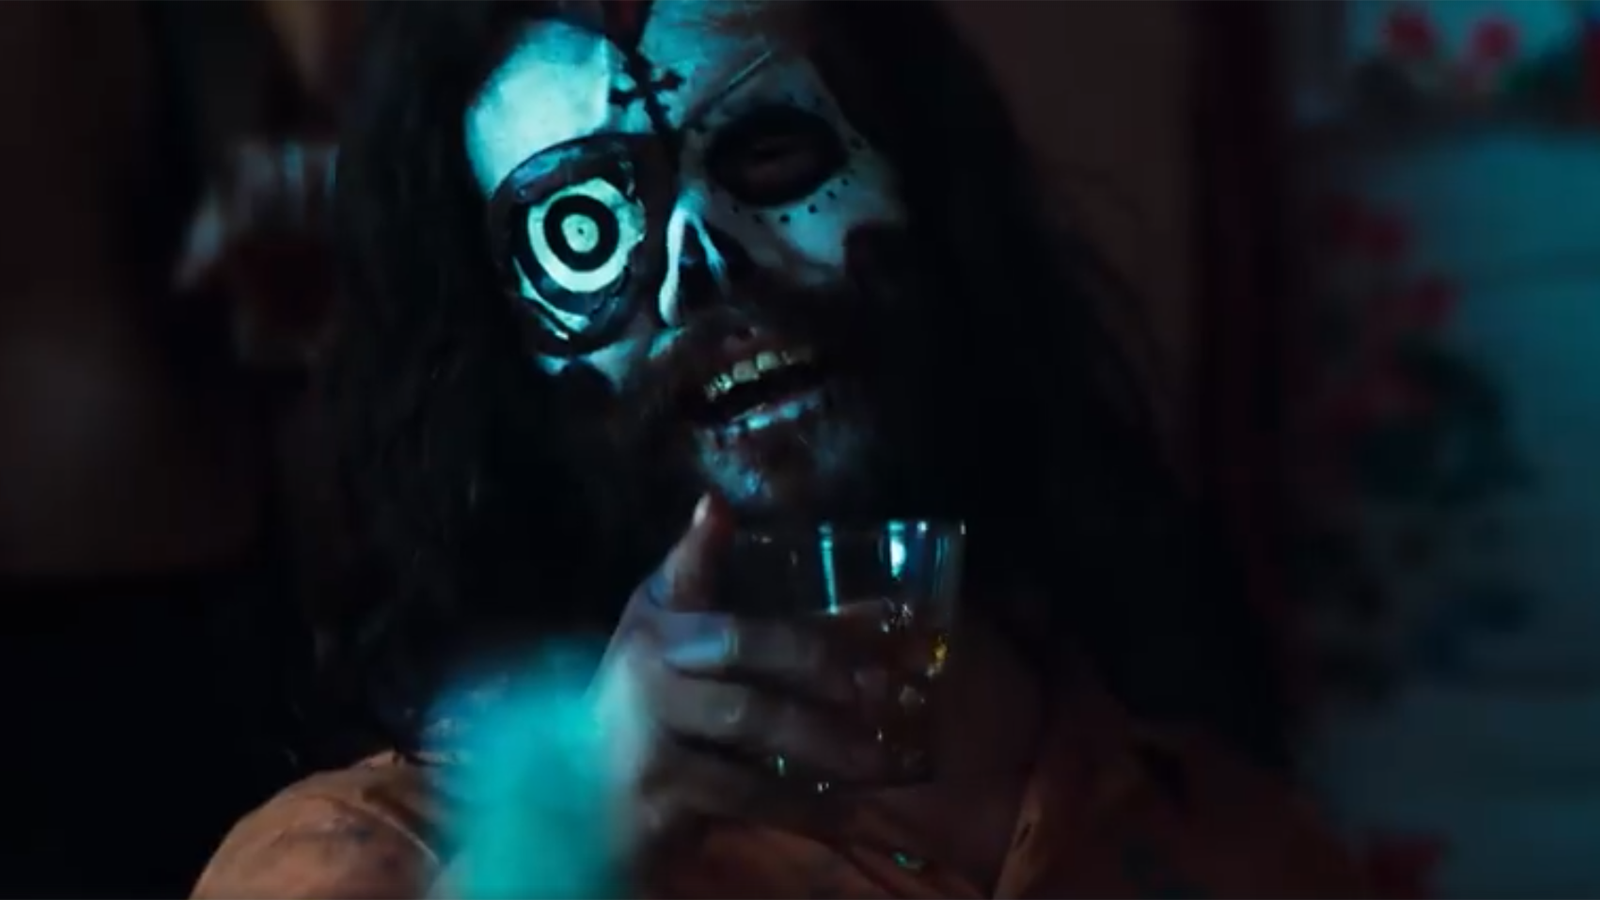 Rob Zombie's '3 From Hell': See Creepy, Violent New Full Trailer